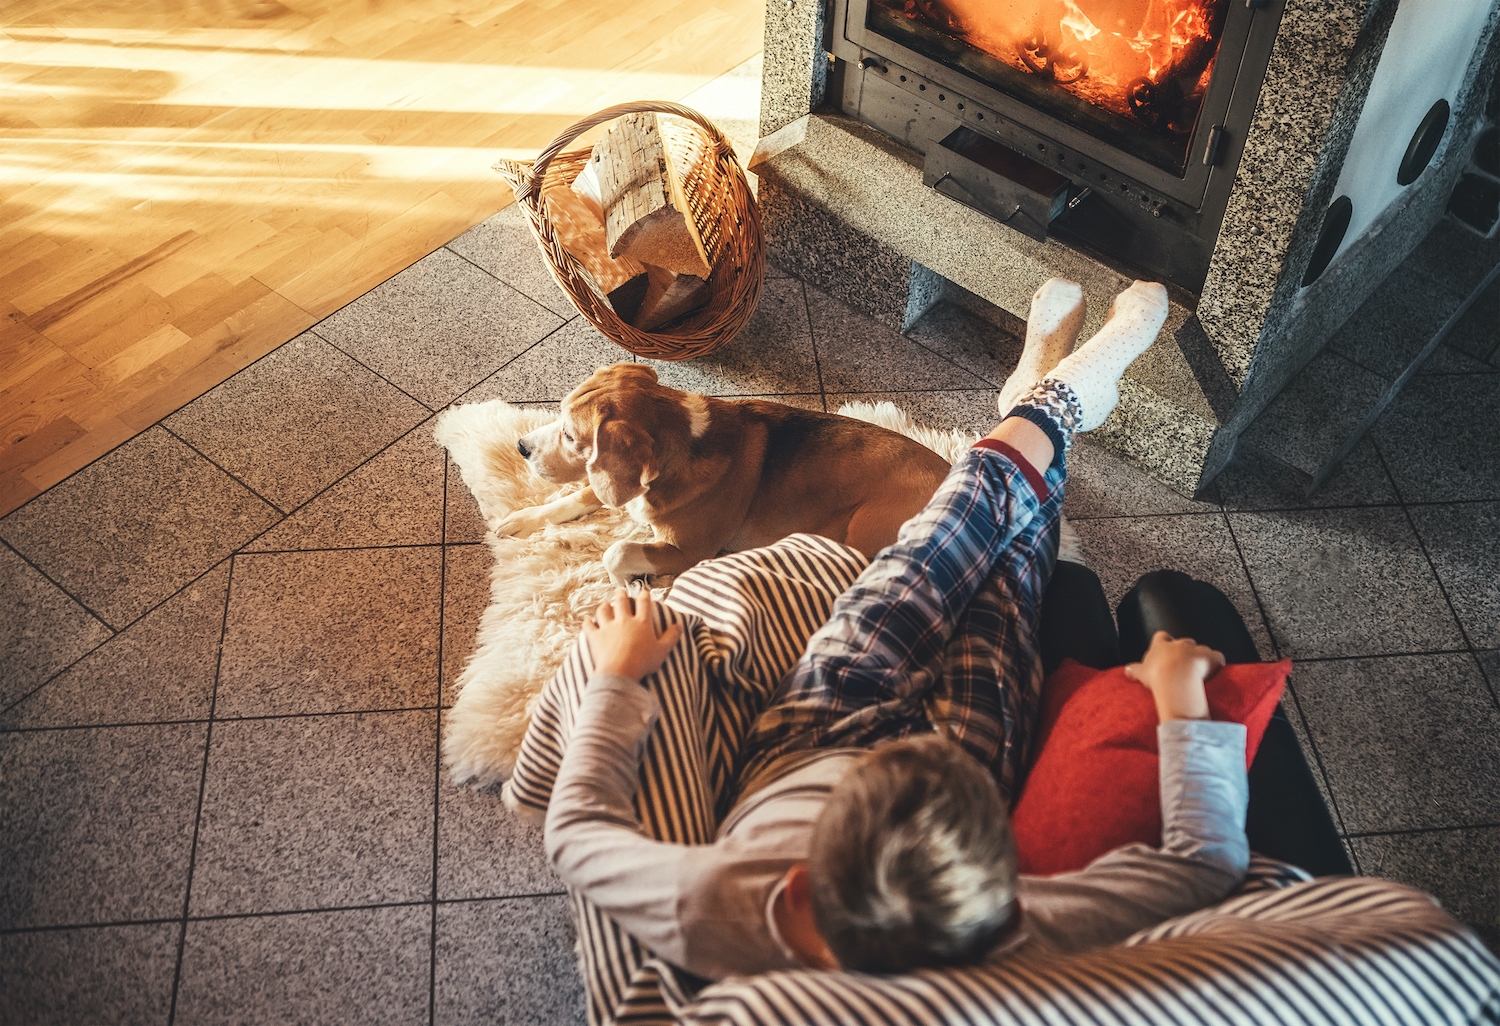 Boy sitting in comfortable armchair in cozy country house near fireplace and enjoying a warm atmosphere and flame moves. His beagle friend dog lying beside on the white sheepskin.